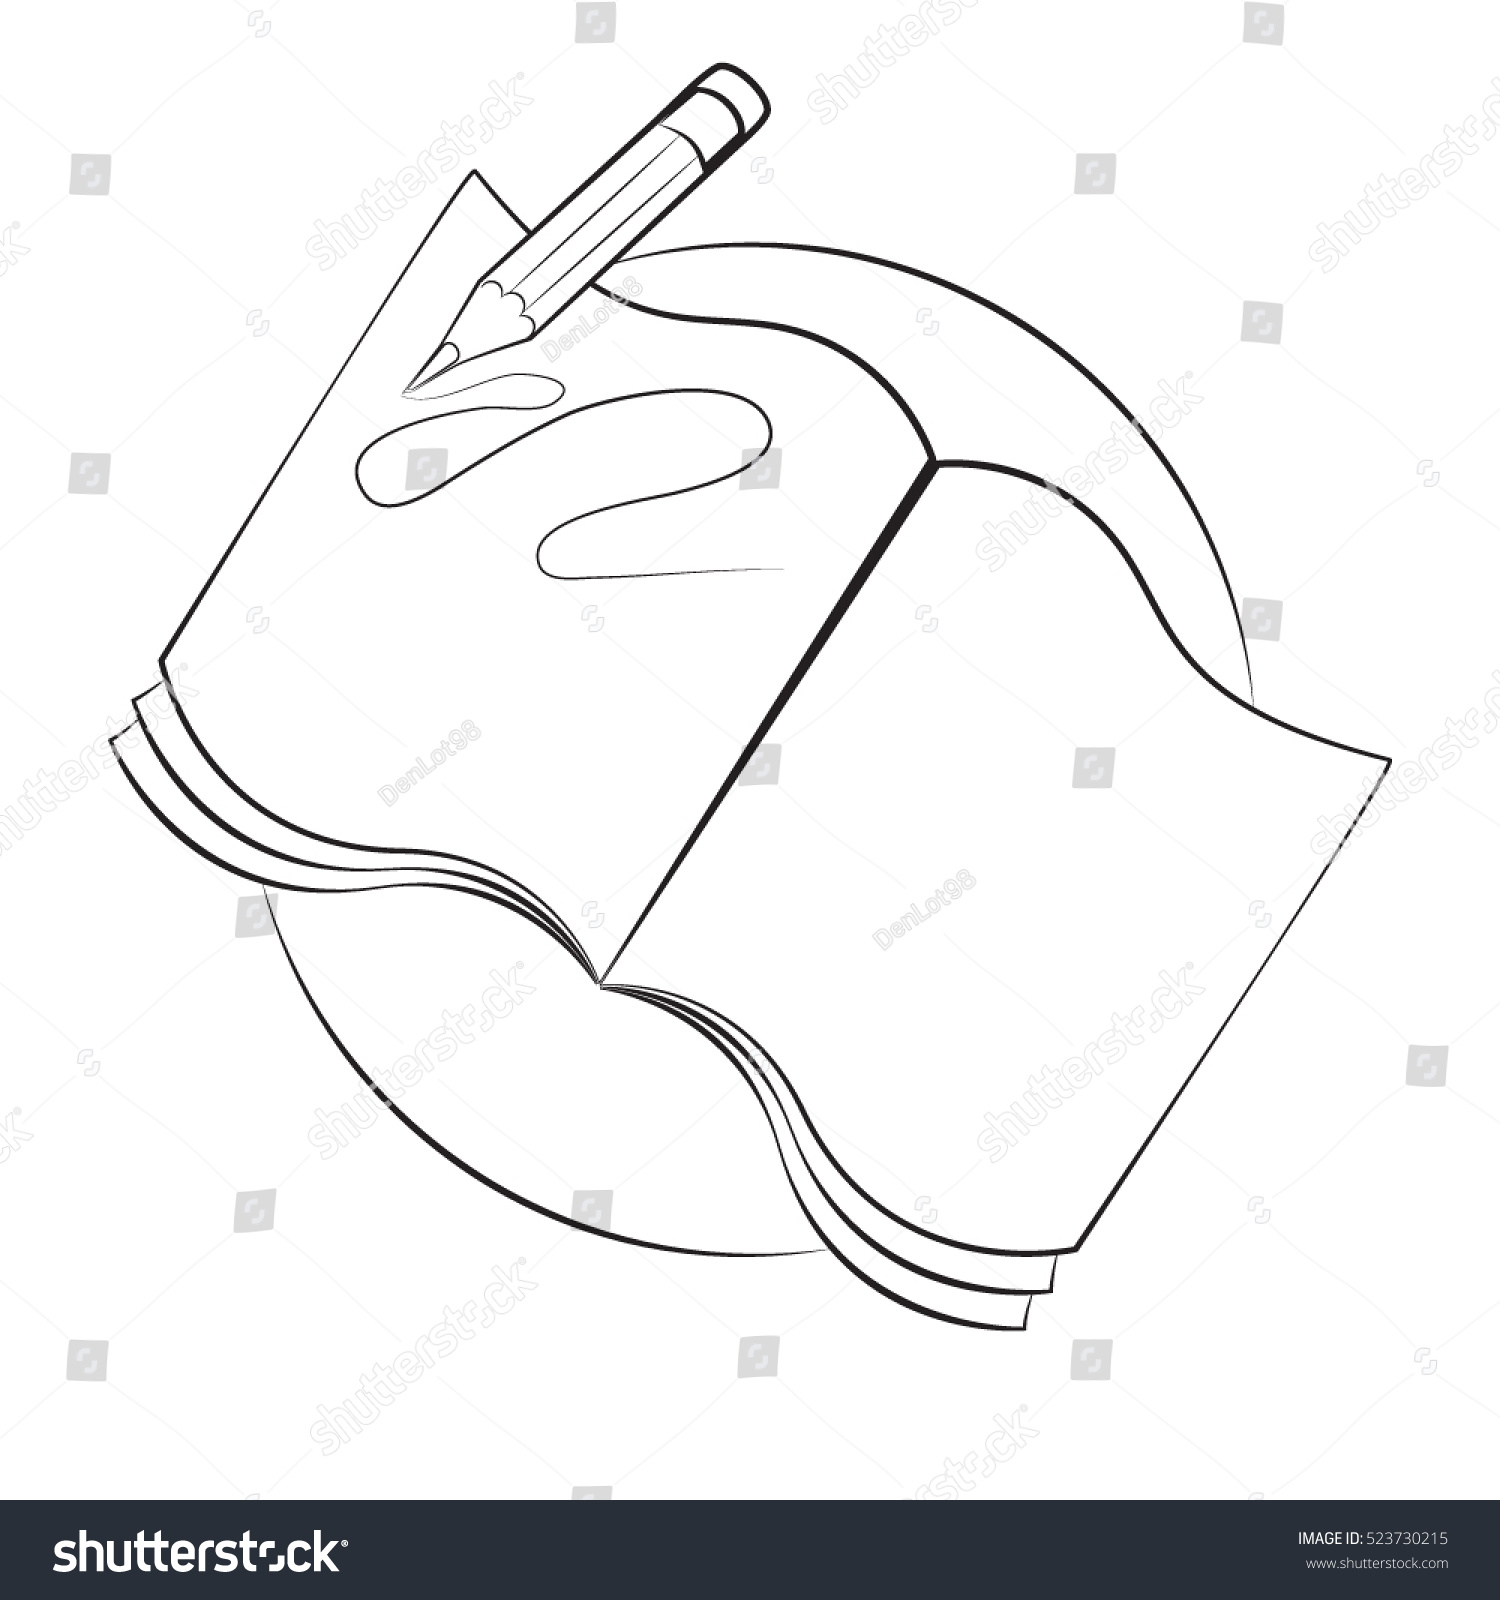 Open books with pencil drawing sketch vector illustration